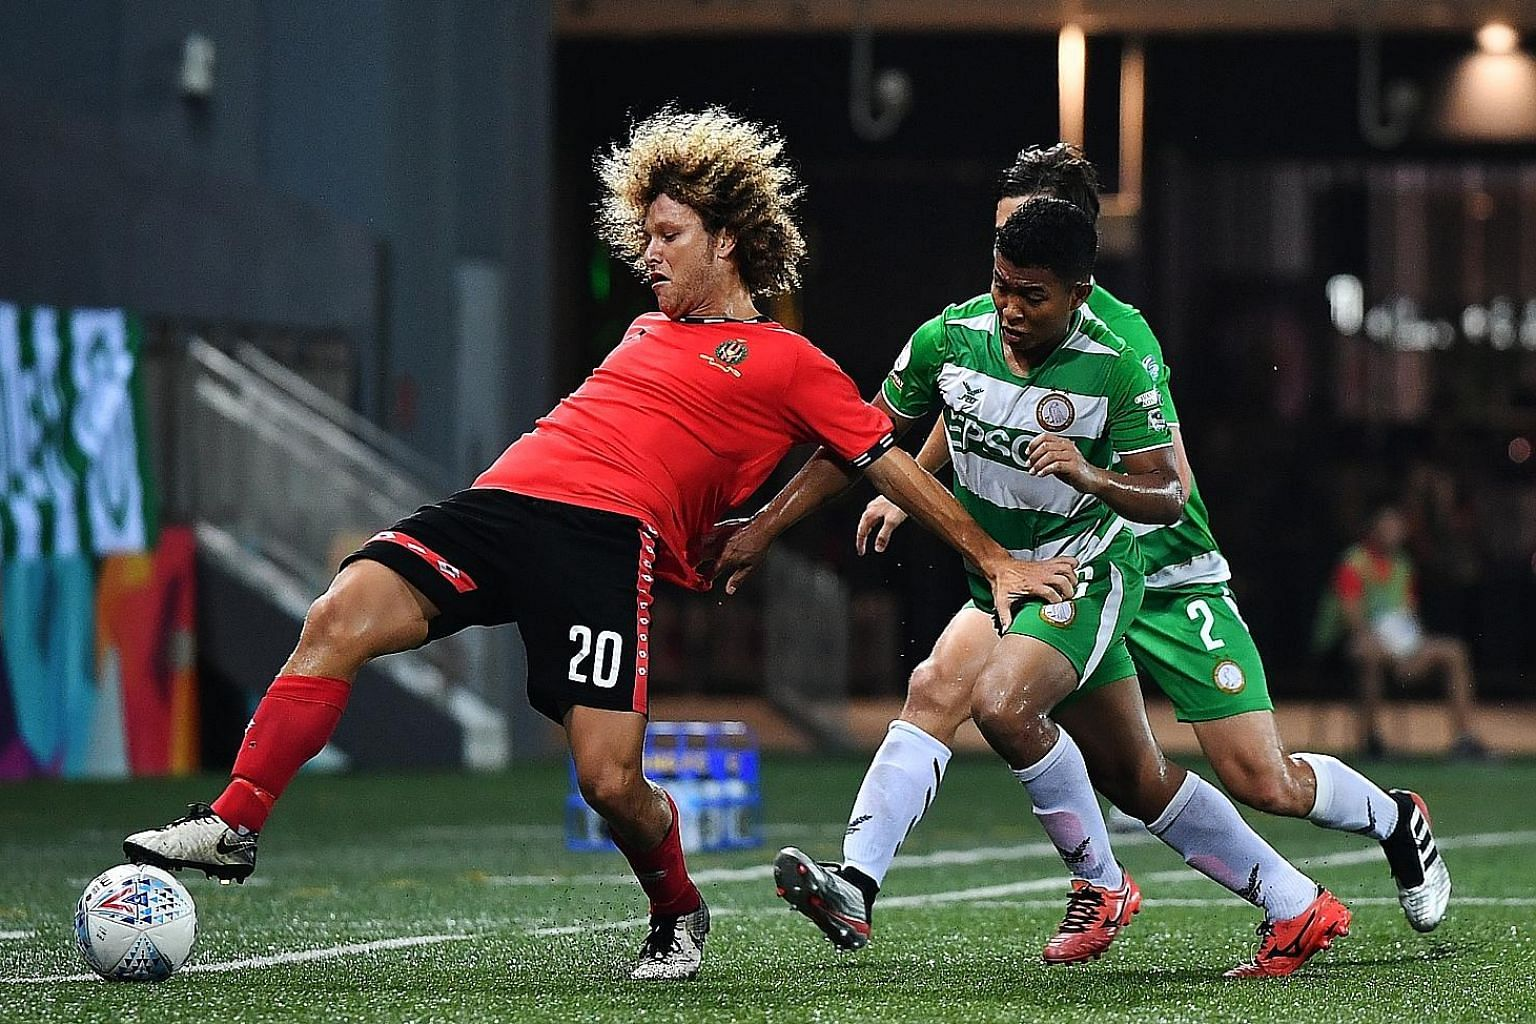 Blake Ricciuto of Brunei DPMM shields the ball from Geylang International's Umar Akhbar. Three first-half goals helped DPMM beat the Eagles 3-1 at Our Tampines Hub, stretching their lead atop the Singapore Premier League (SPL) over second-placed Albi